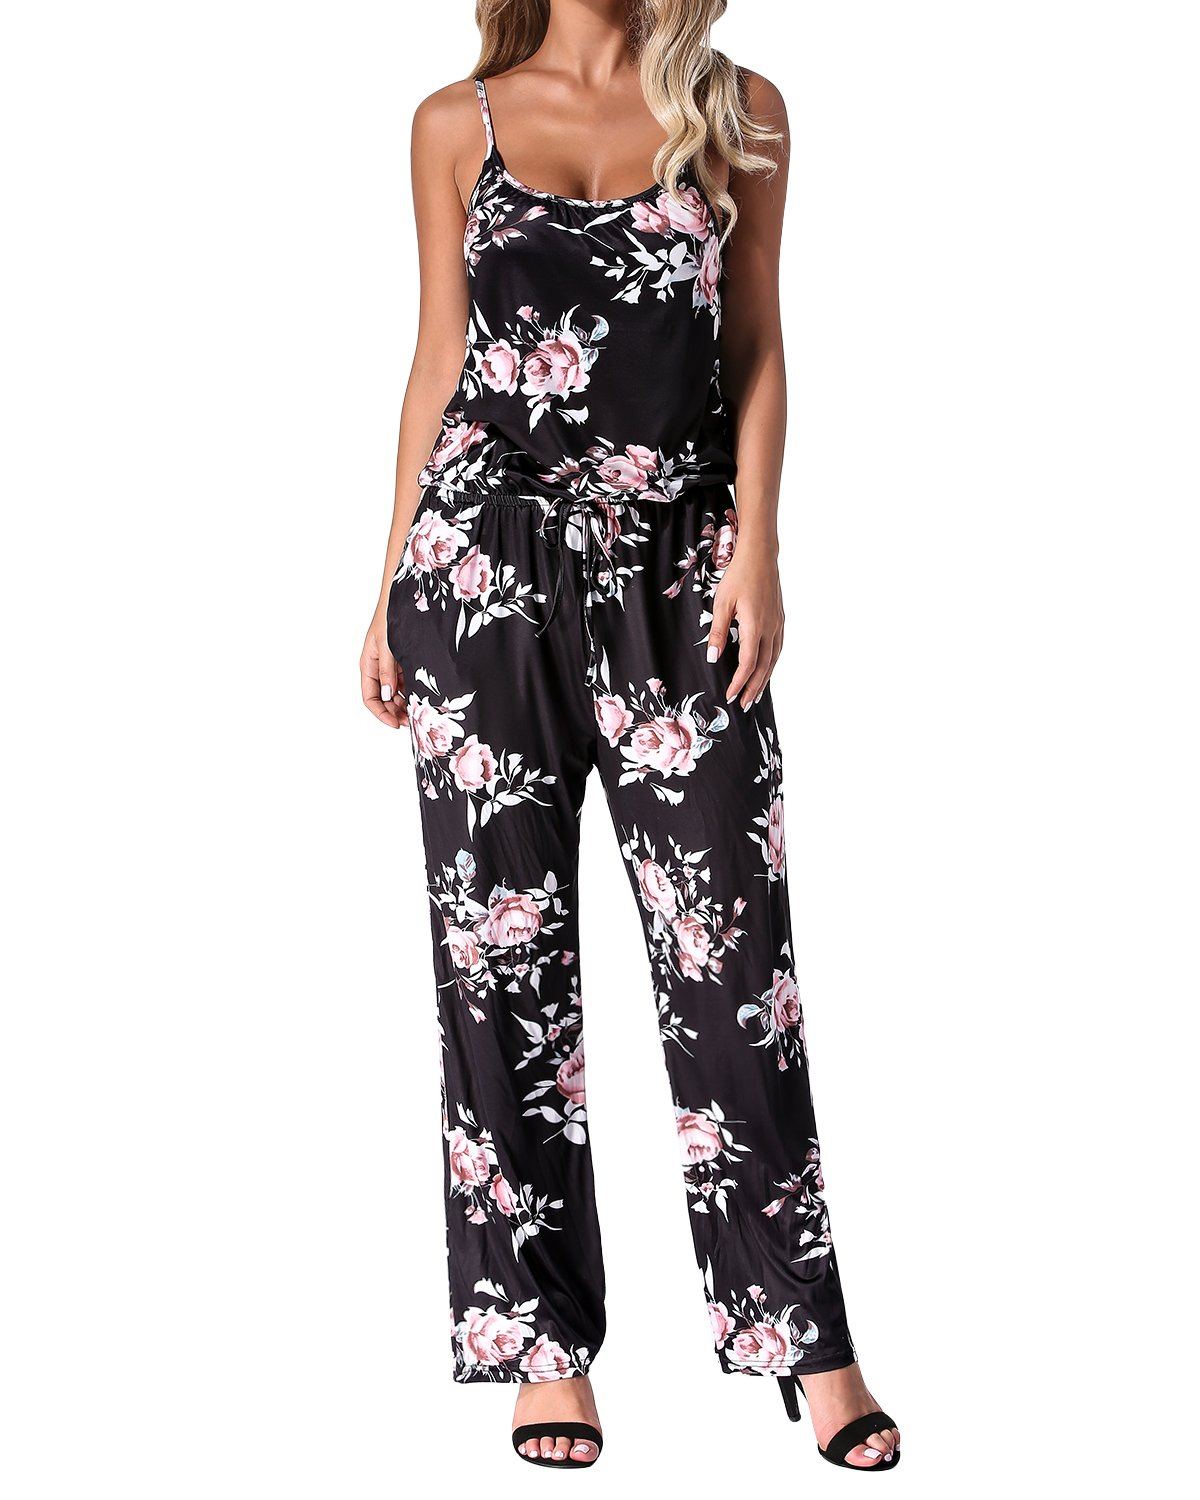 Auxo Womens Jumper One Piece Jumpsuit Wide Leg Floral Boho Summer Maxi Romper Playsuit Black XL